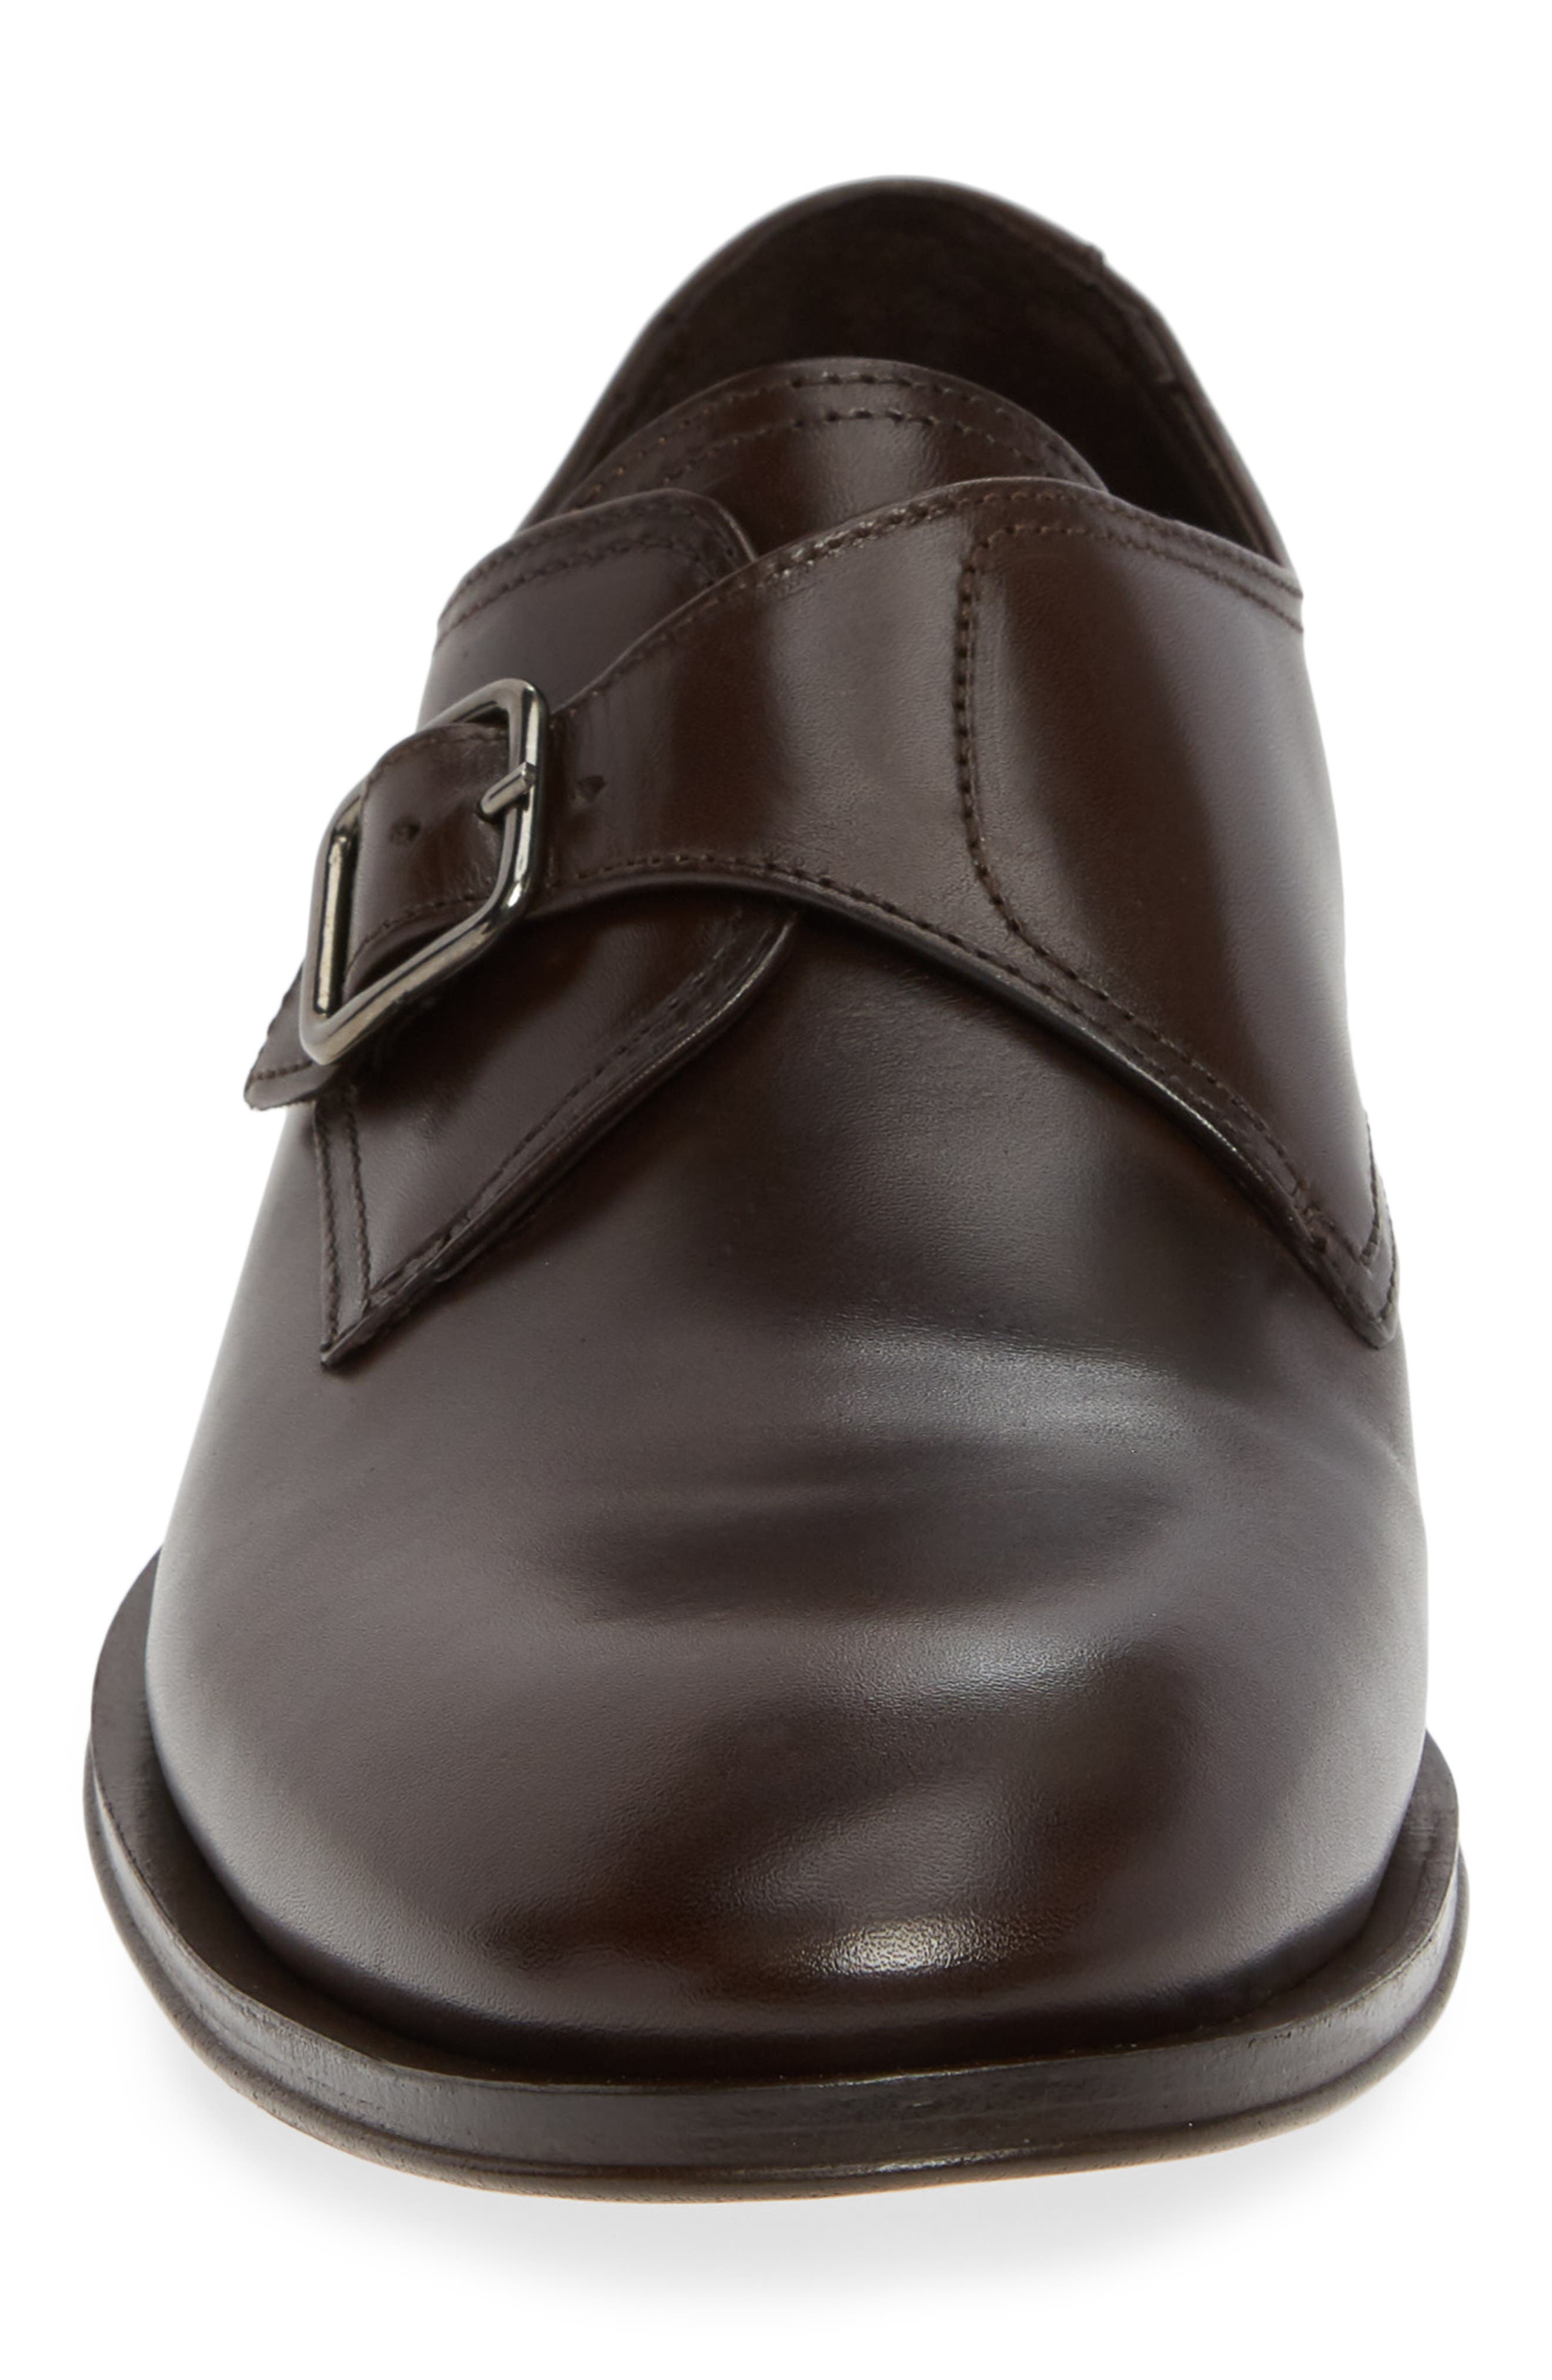 ALLEN EDMONDS, Umbria Monk Strap Shoe, Alternate thumbnail 4, color, DARK BROWN LEATHER